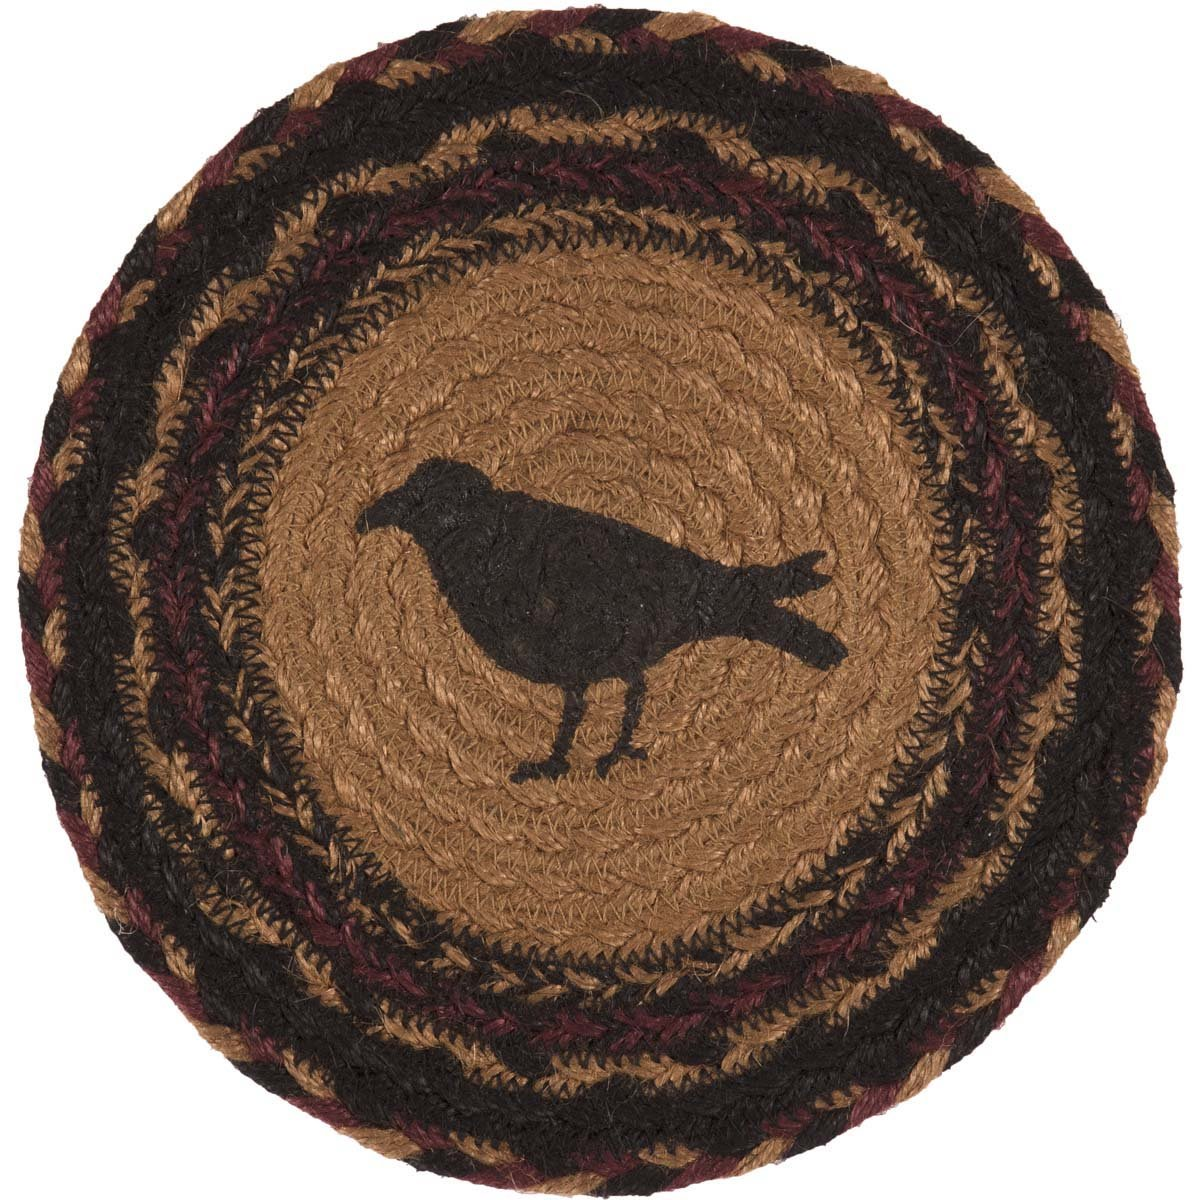 Heritage Farms Crow Jute Trivet.